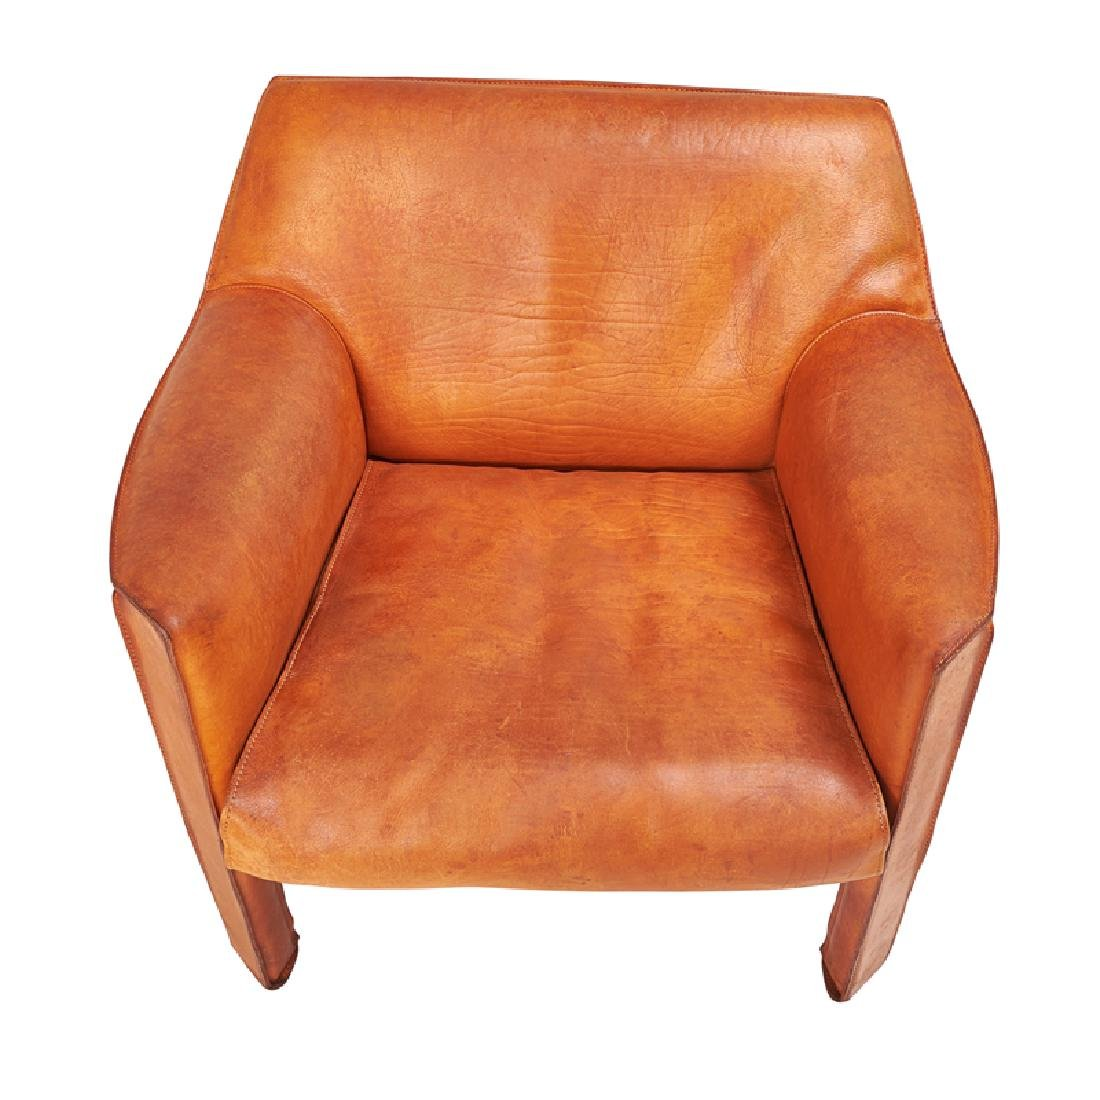 MARIO BELLINI Cab love seat, pr. of lounge chairs - 3